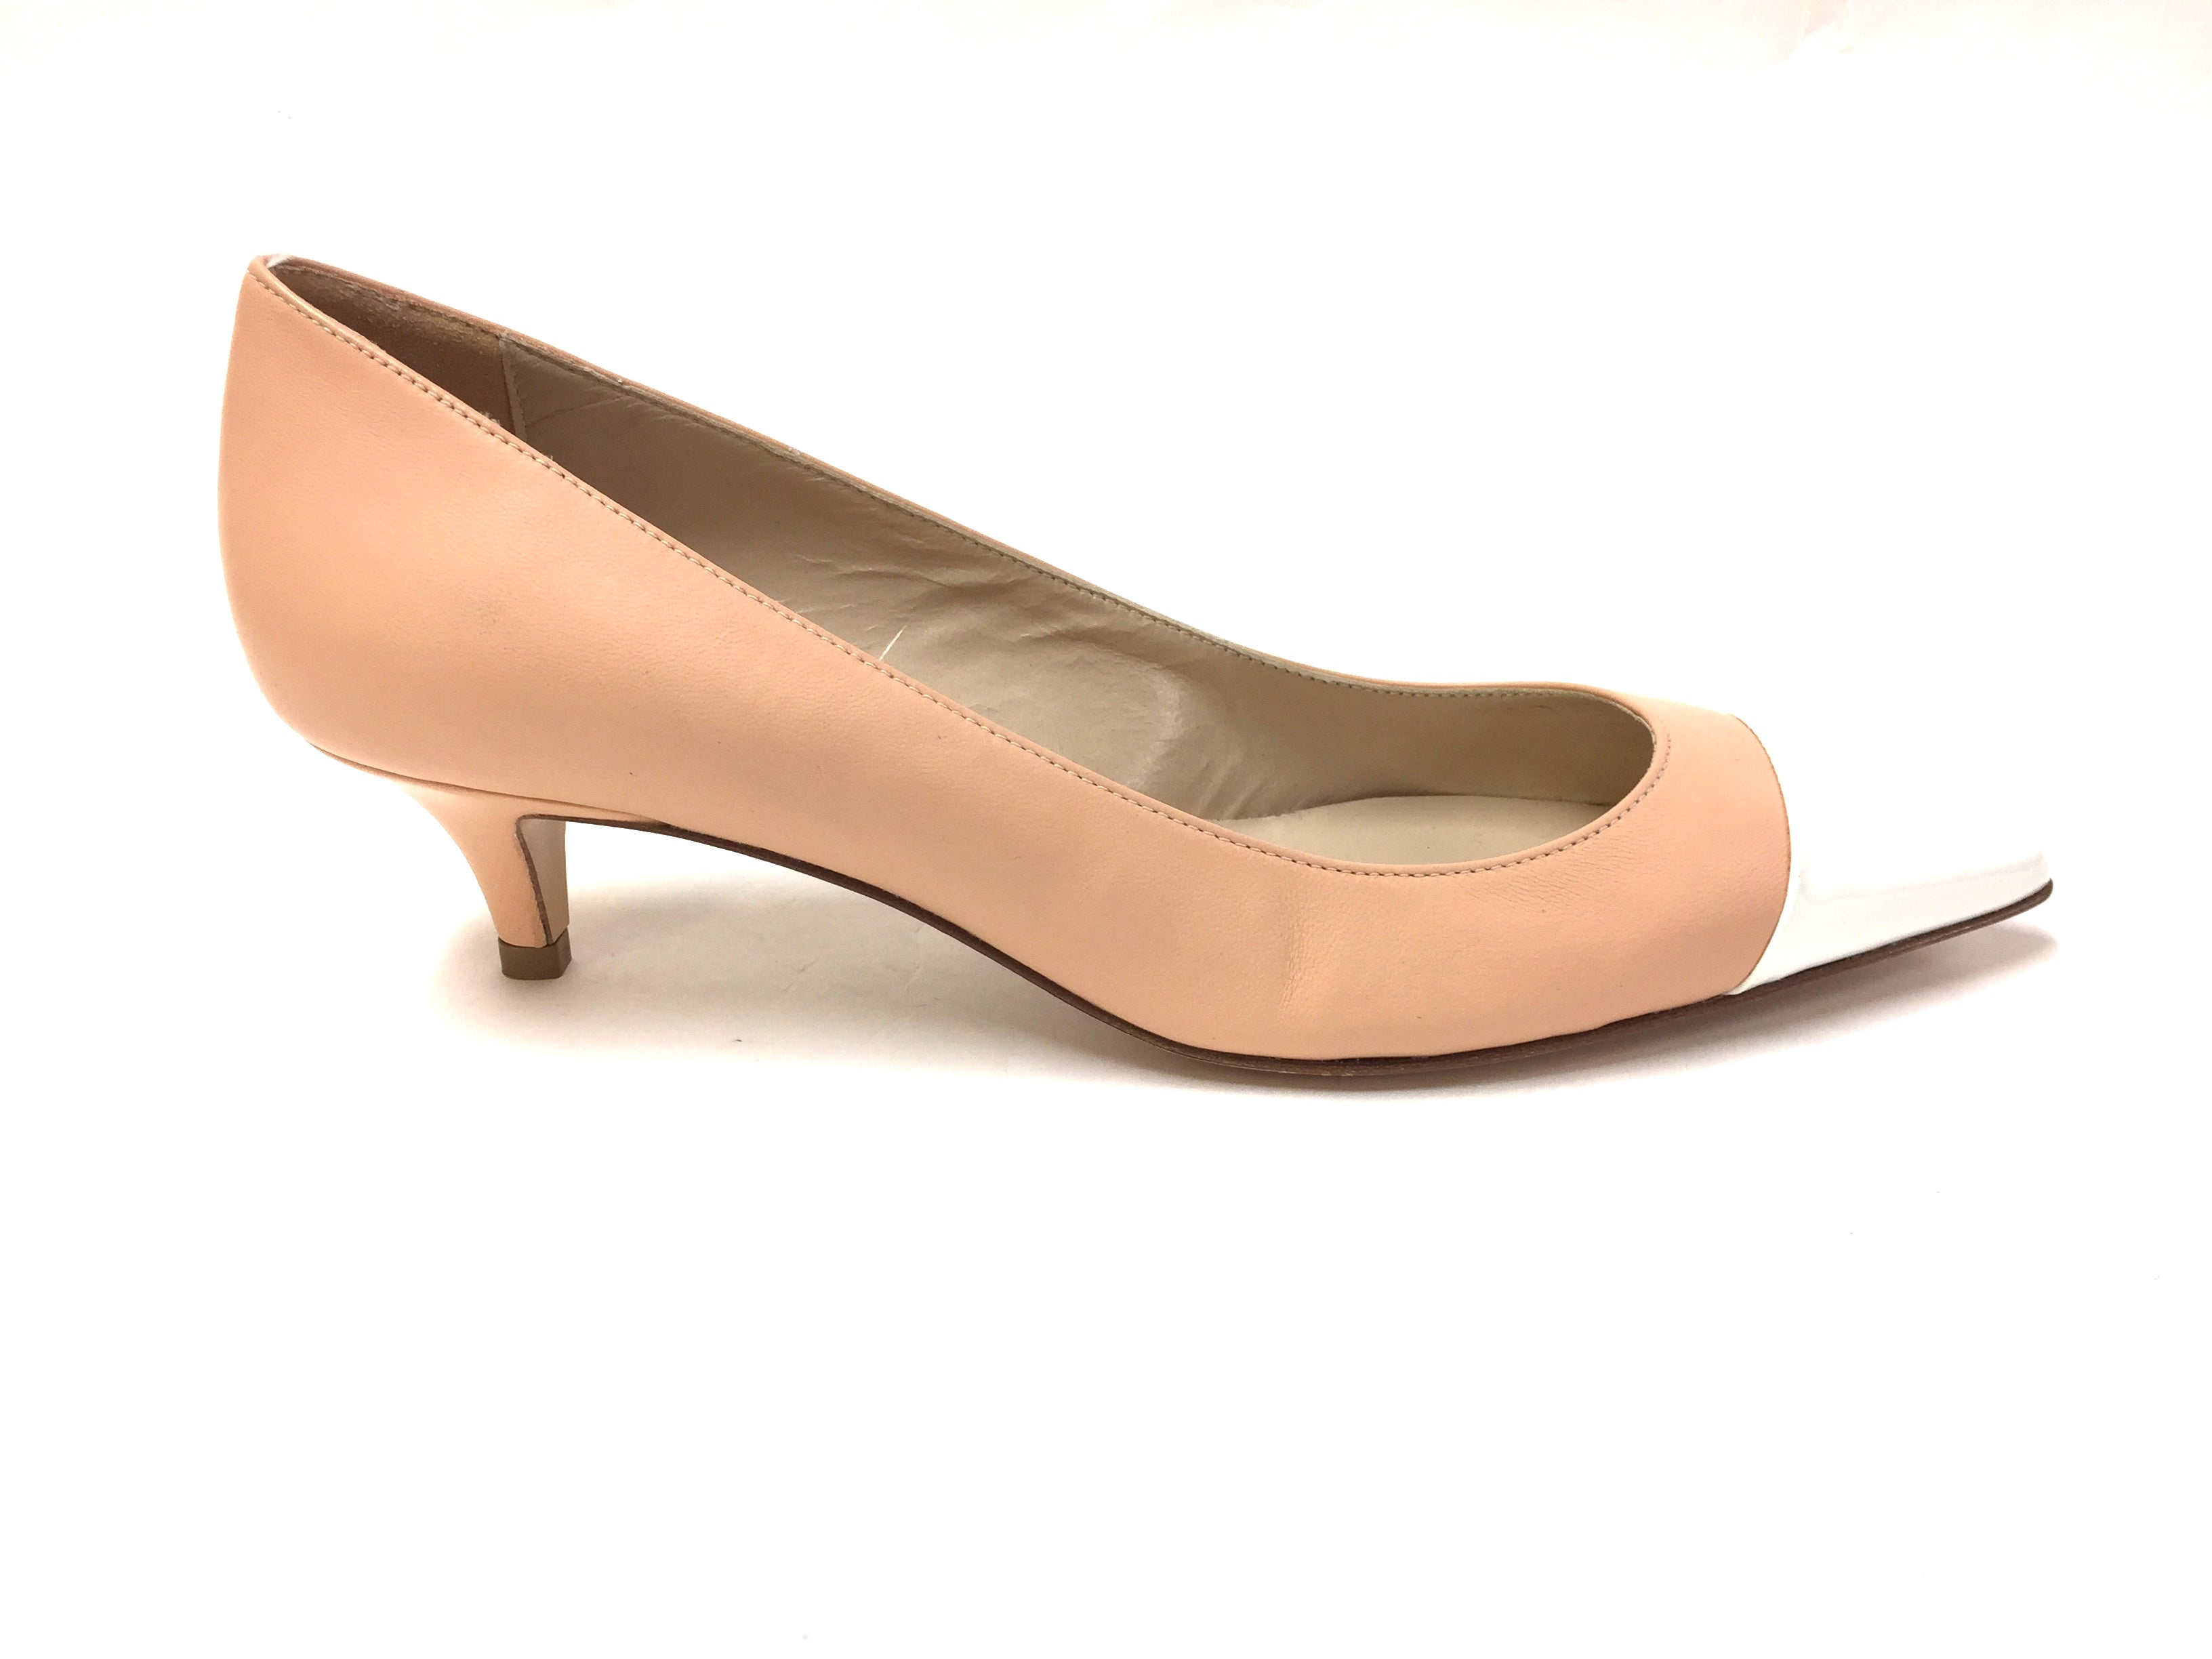 db7bb1e09aa PAOLO BERTINI New Nude Leather White Patent Leather Cap-Toe Kitten Heel  Pumps Shoes Size: 7